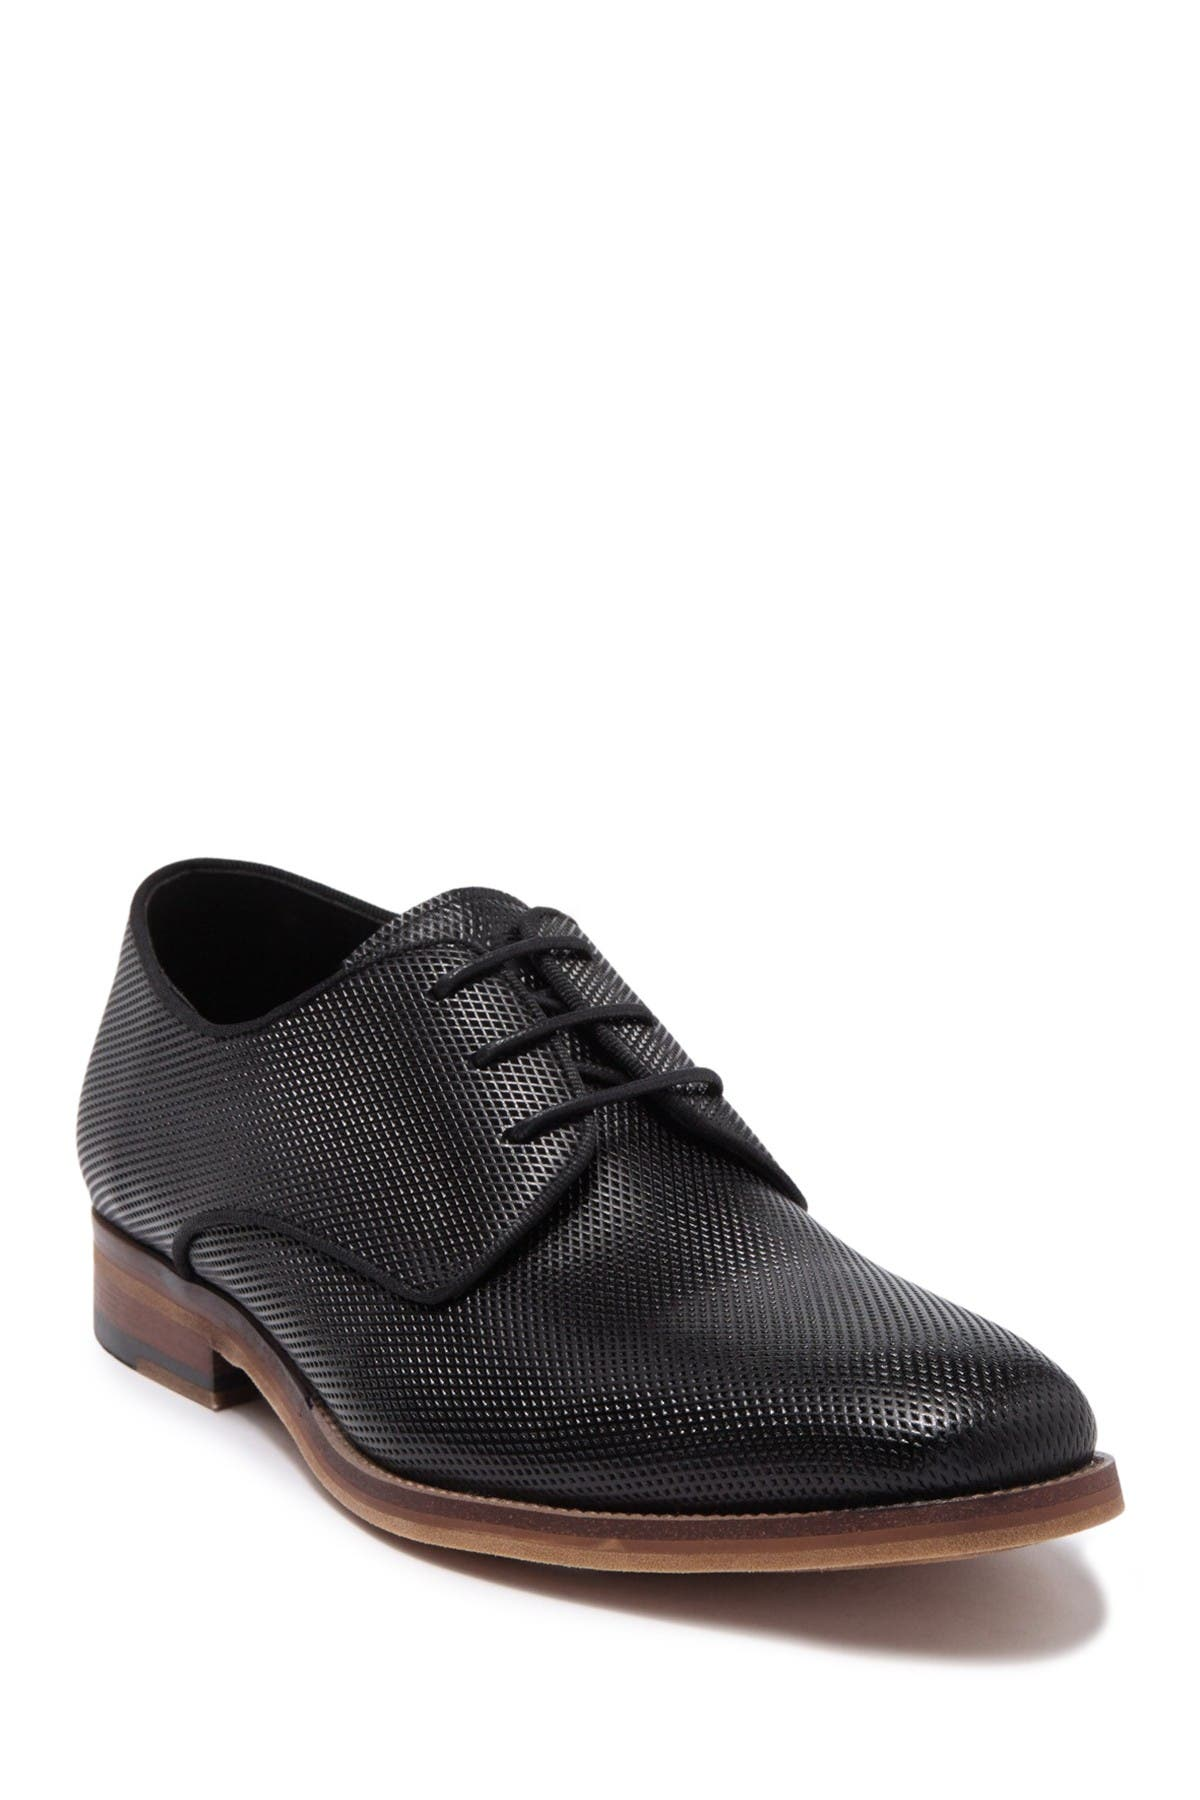 Image of Karl Lagerfeld Paris Embossed Leather Plain Toe Derby